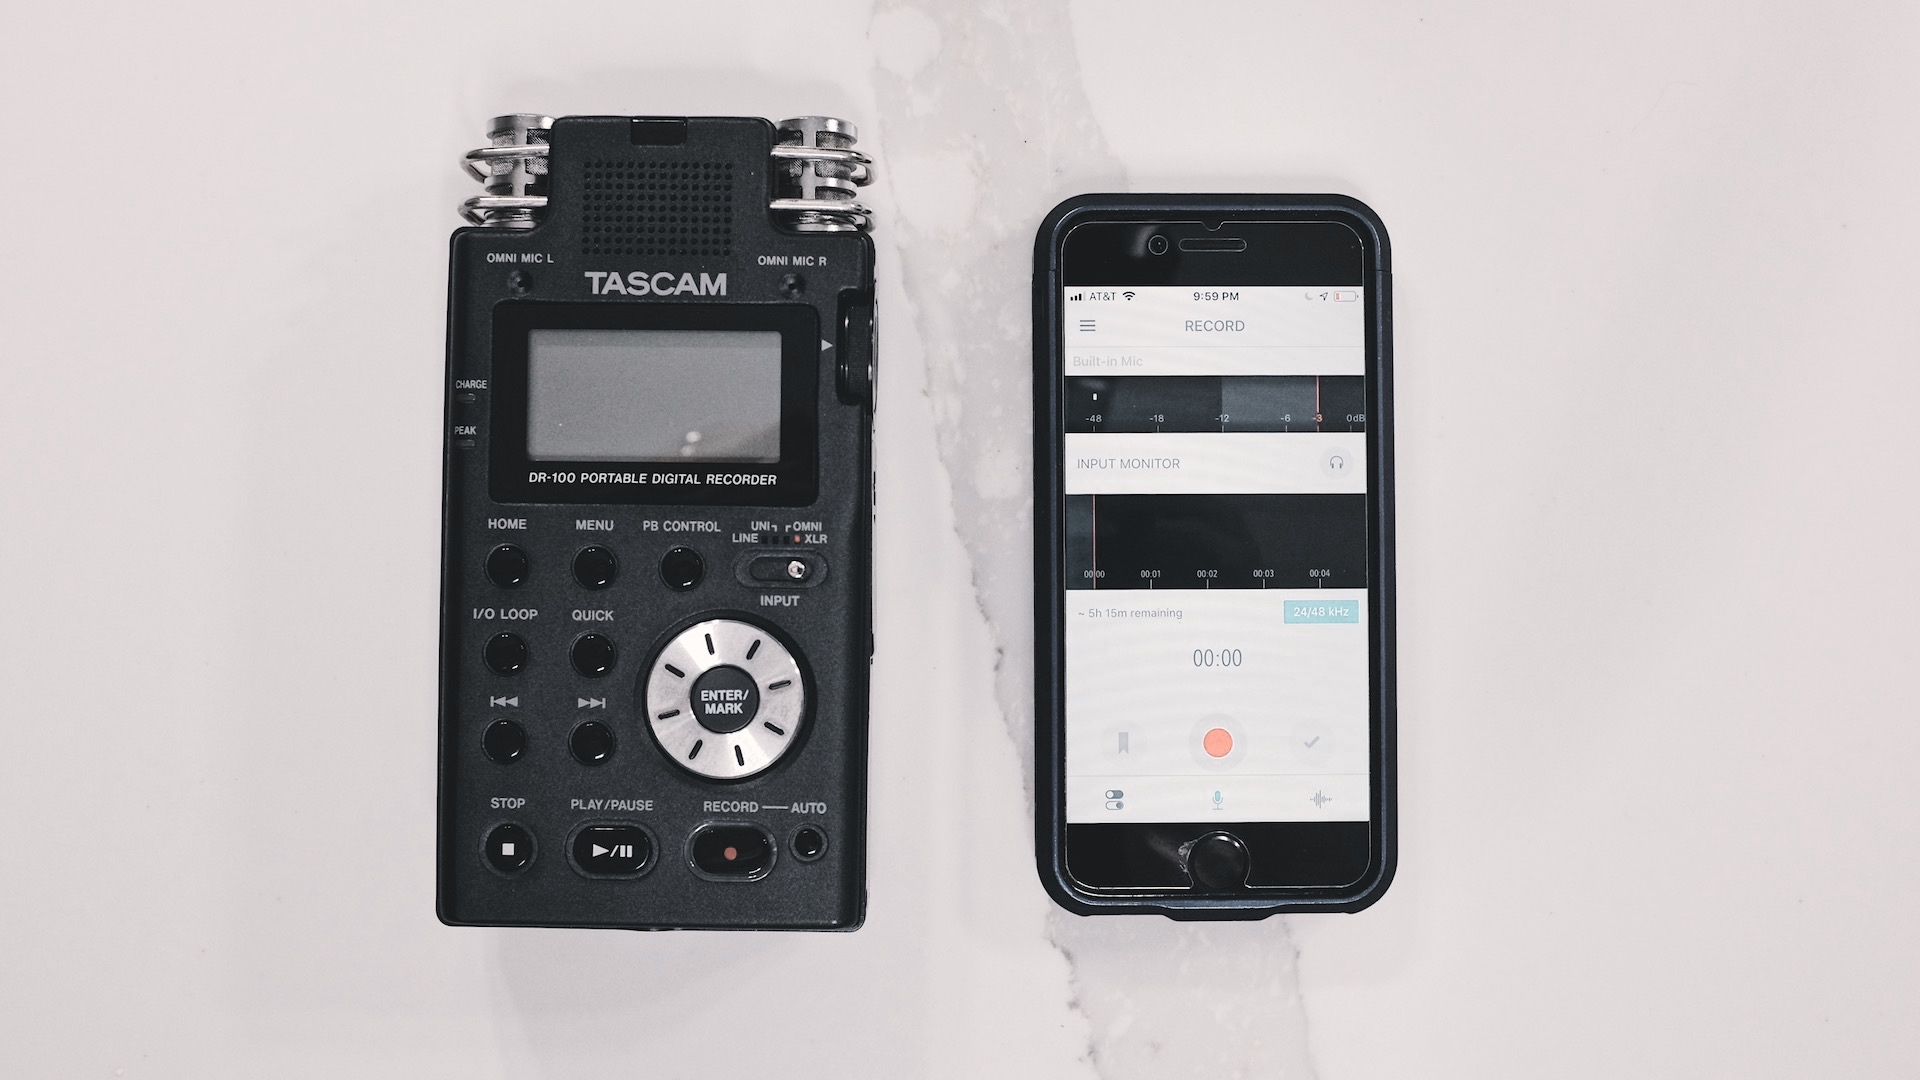 A dedicated audio field recorder compared to the iPhone.